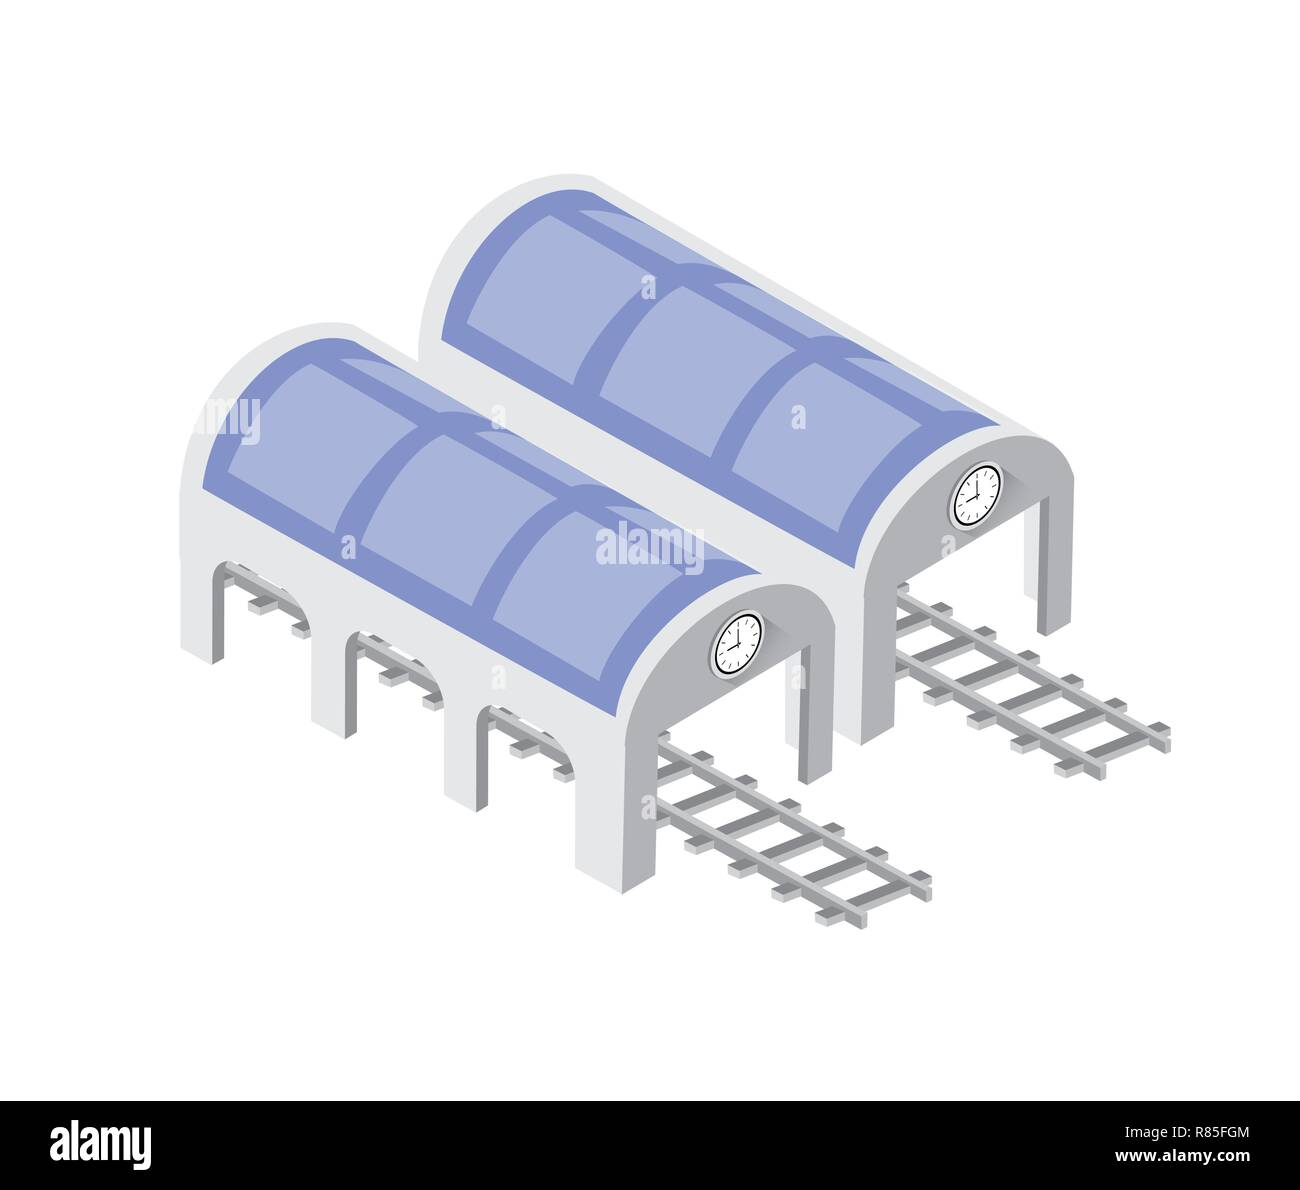 Fast modern high speed train. Vector flat 3d isometric illustration of public transport. Freight transportation to carry large numbers of passengers.  - Stock Image